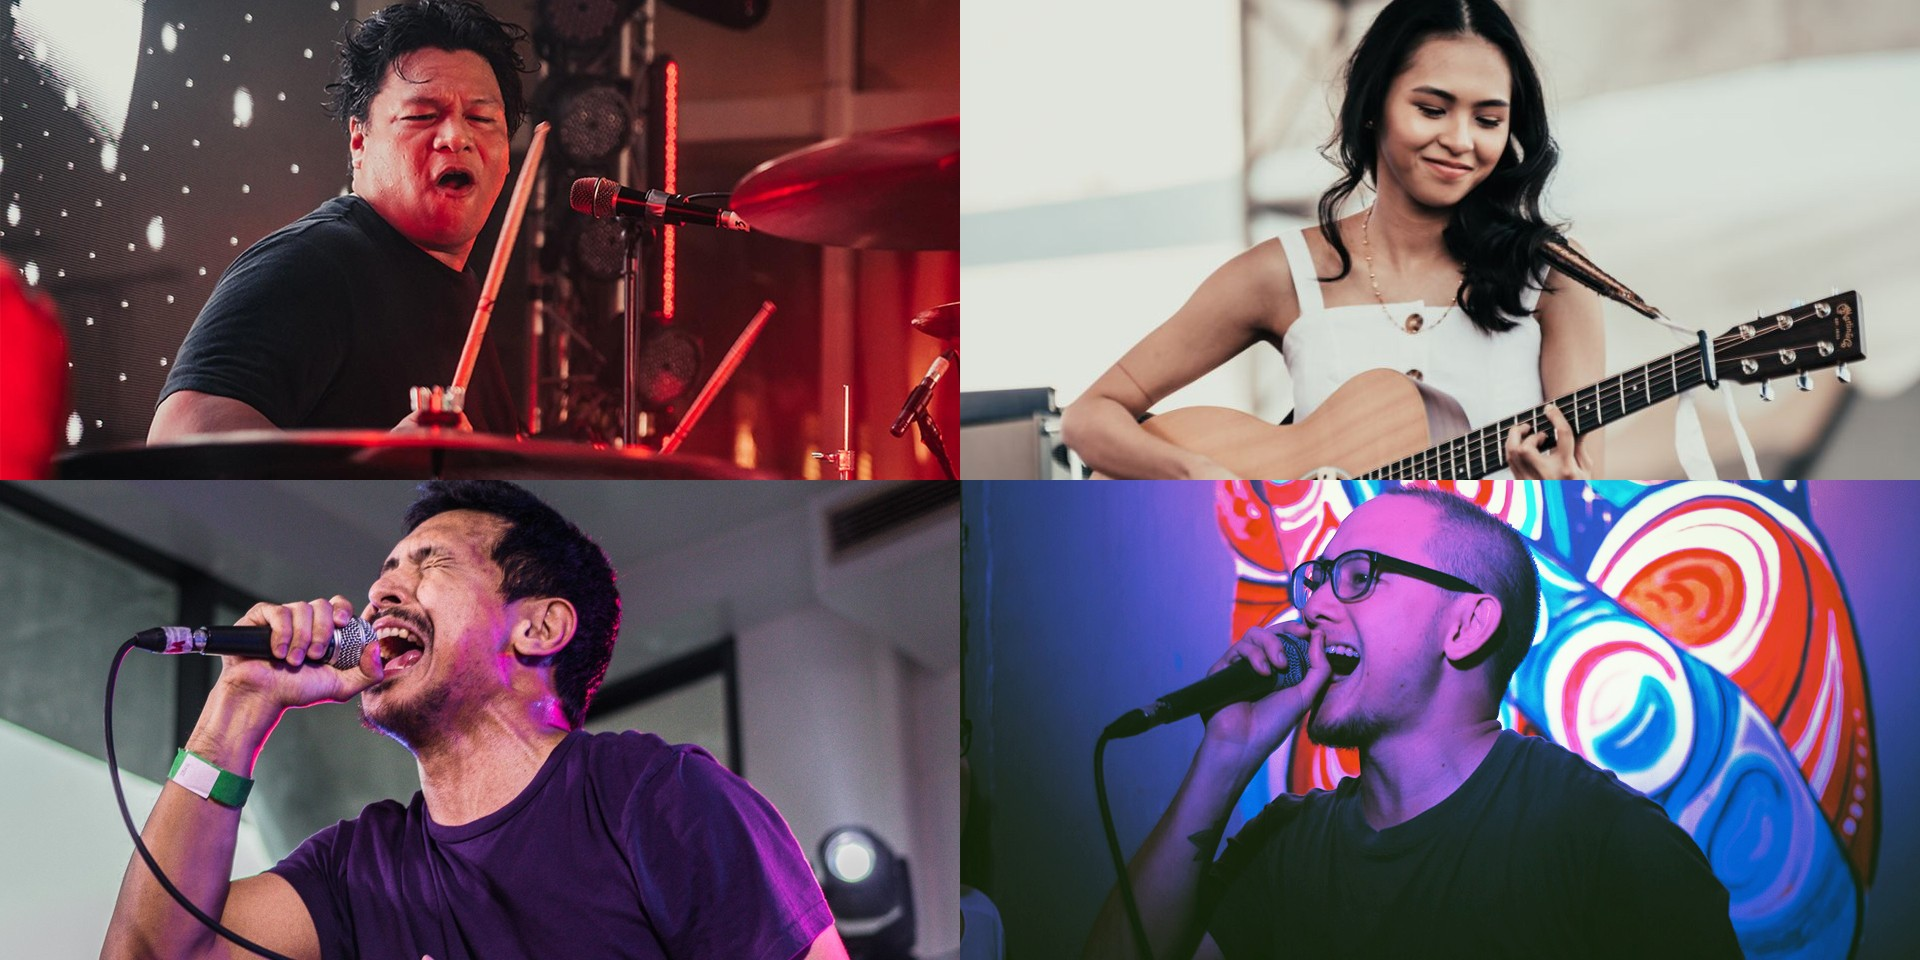 Itchyworms, Clara Benin, Dicta License, Severo, and more to perform at Red Ninja Year 10